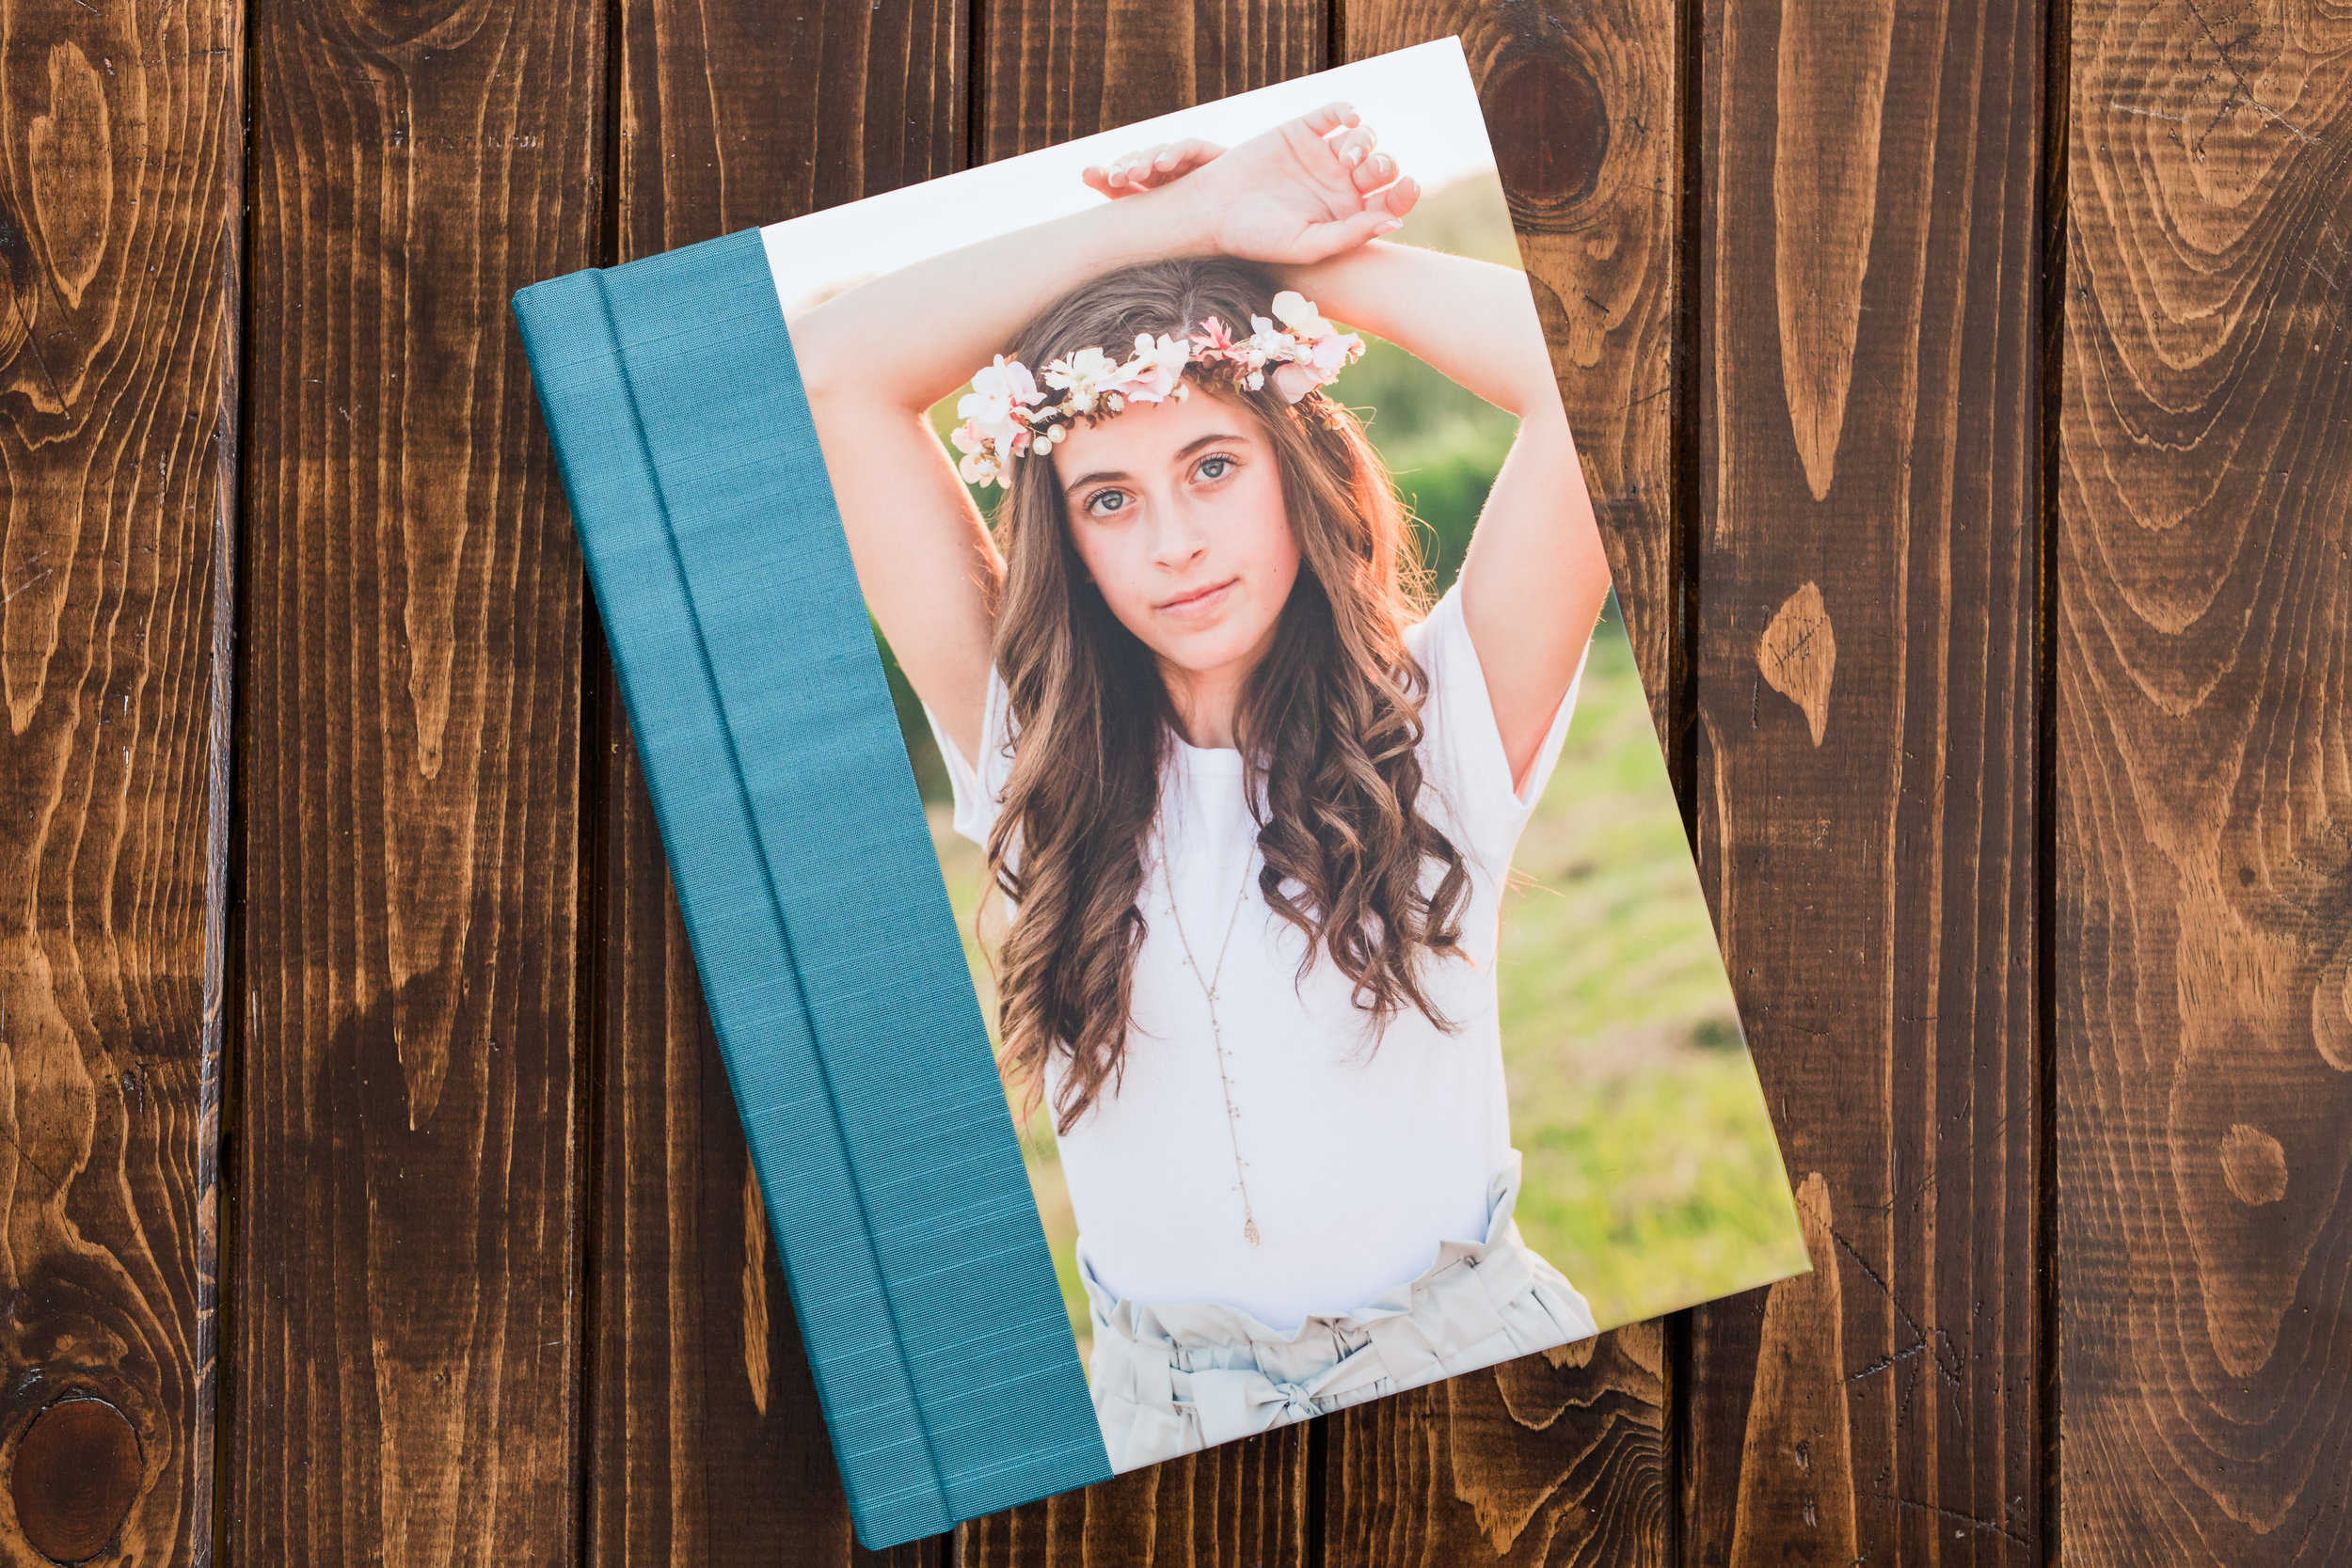 CUSTOM SENIOR ALBUM - Perfect for showing off at your grad party!9x12 inch, 10 spread book$450